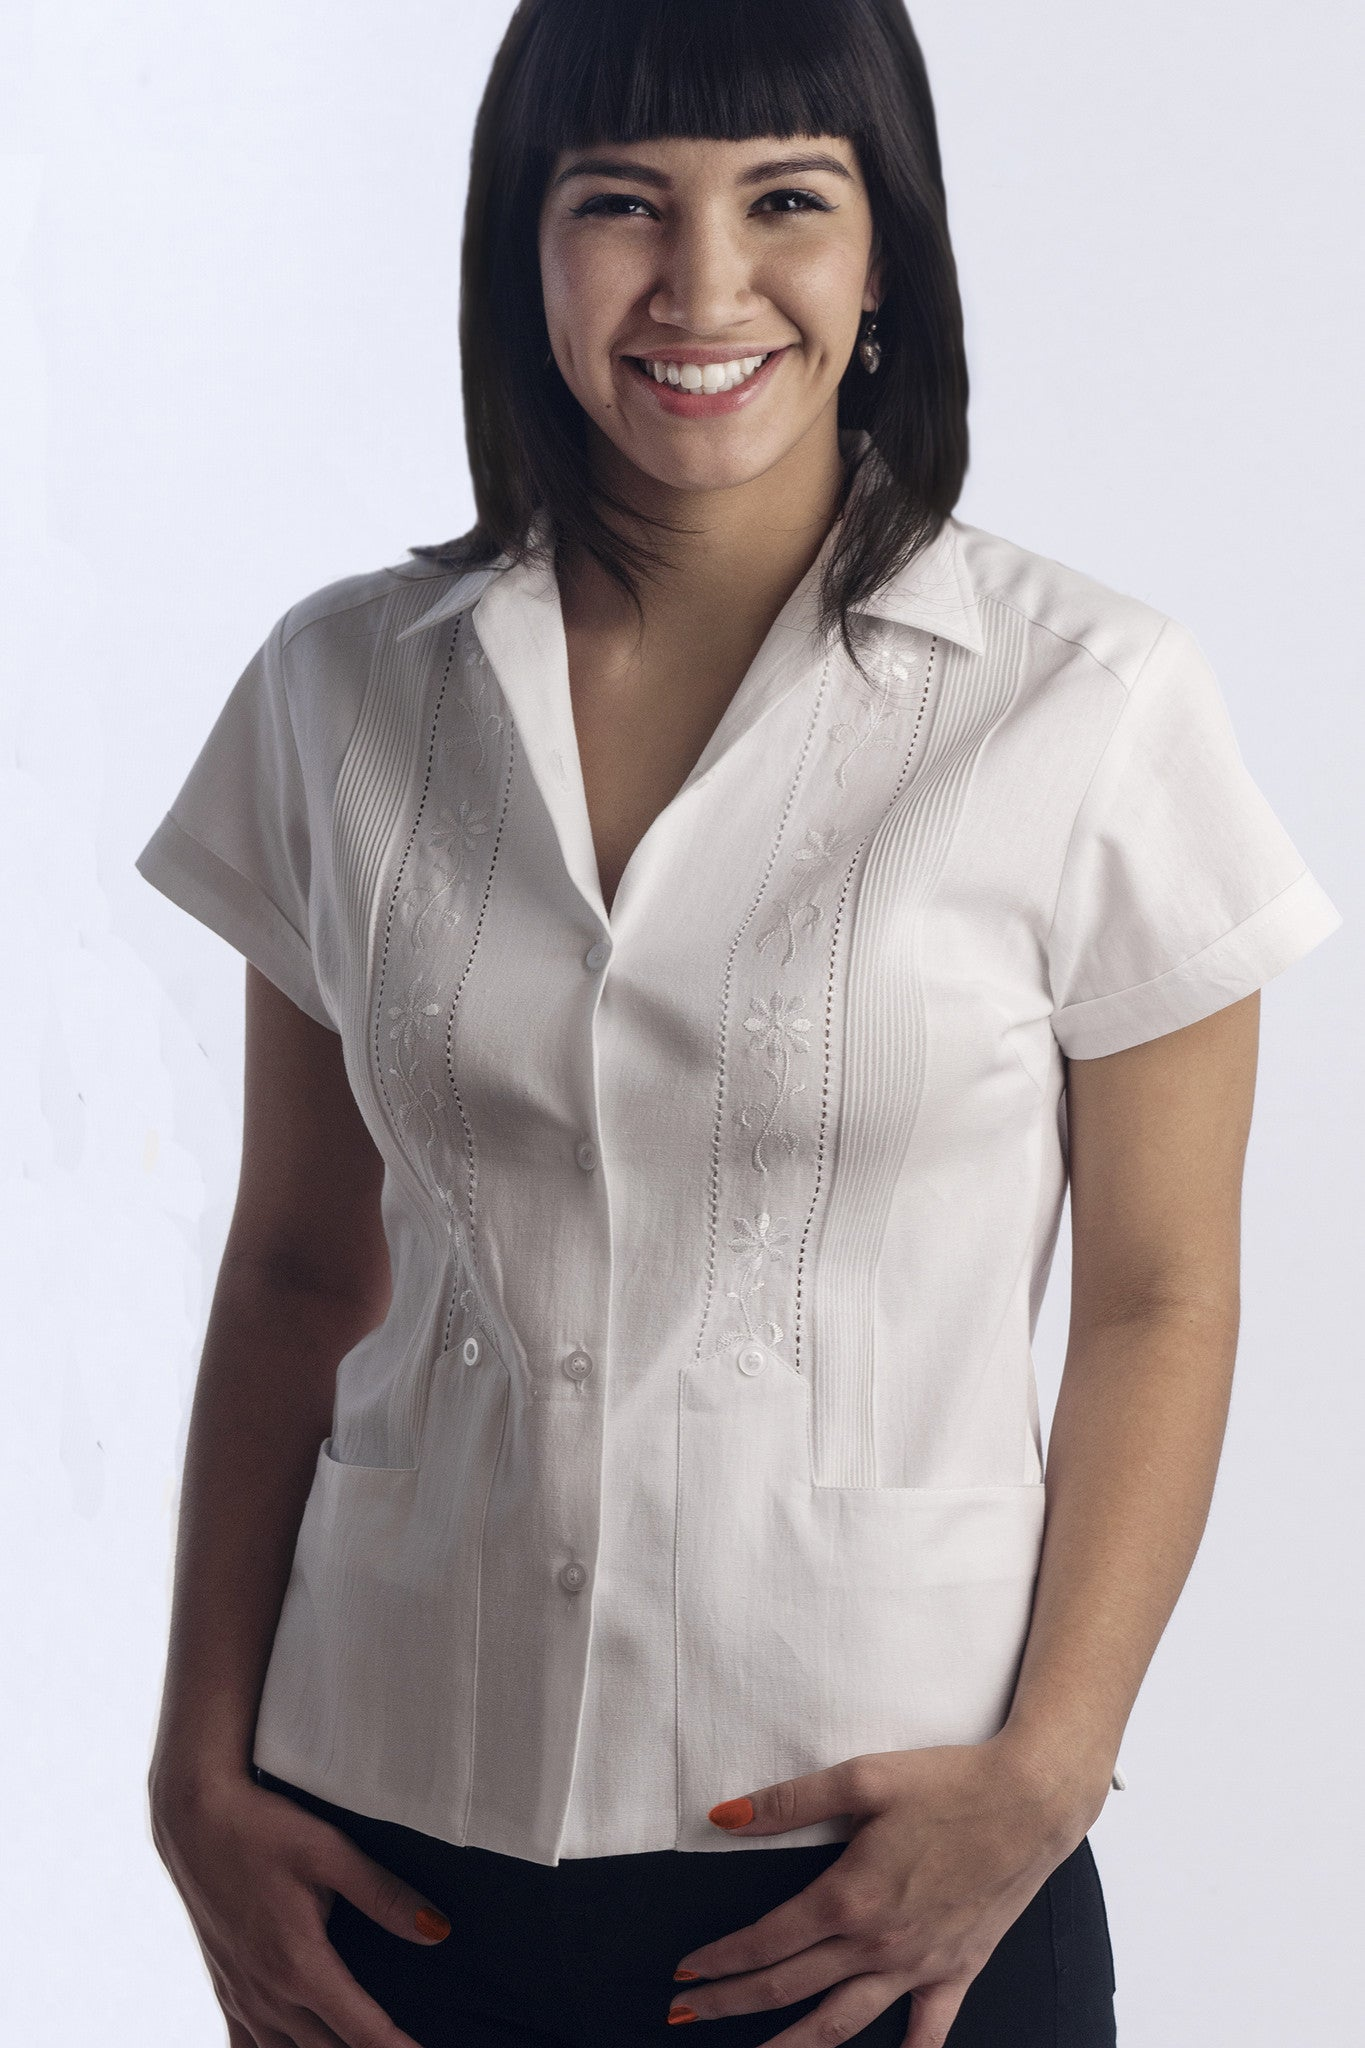 Authentic Women's Guayabera Shirt in 100% Cotton made in Yucatán